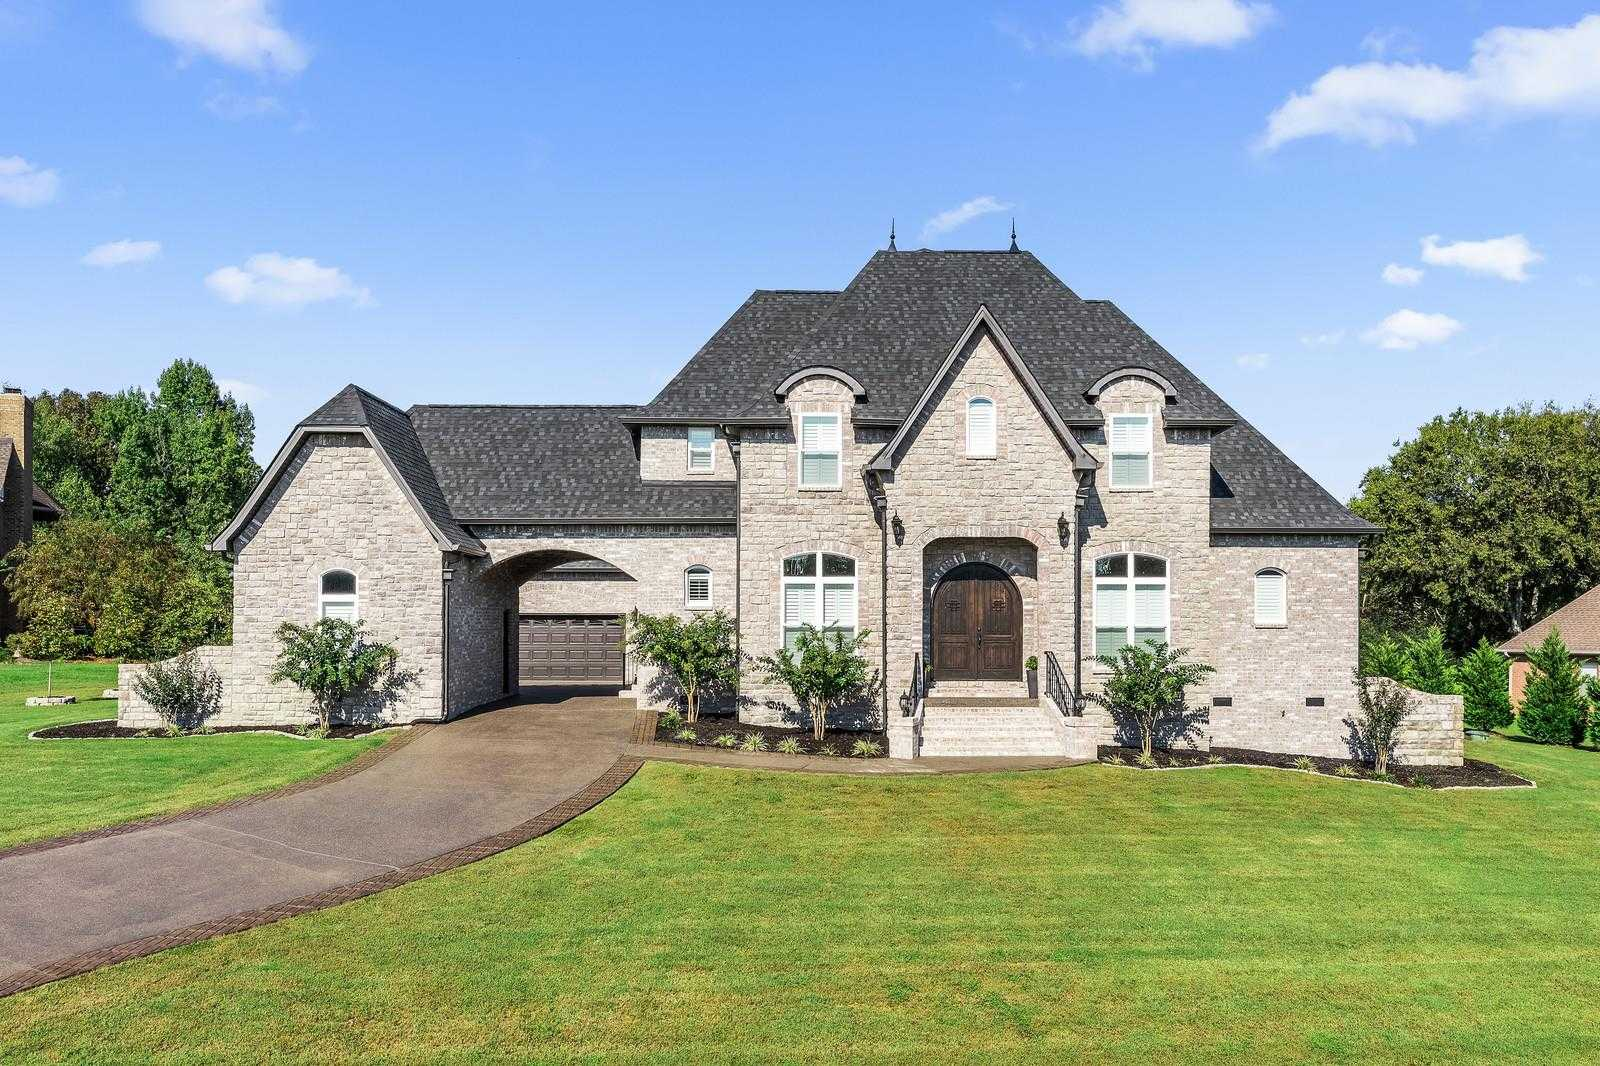 $915,000 - 4Br/3Ba -  for Sale in Spenlake 1 Amended, Mount Juliet